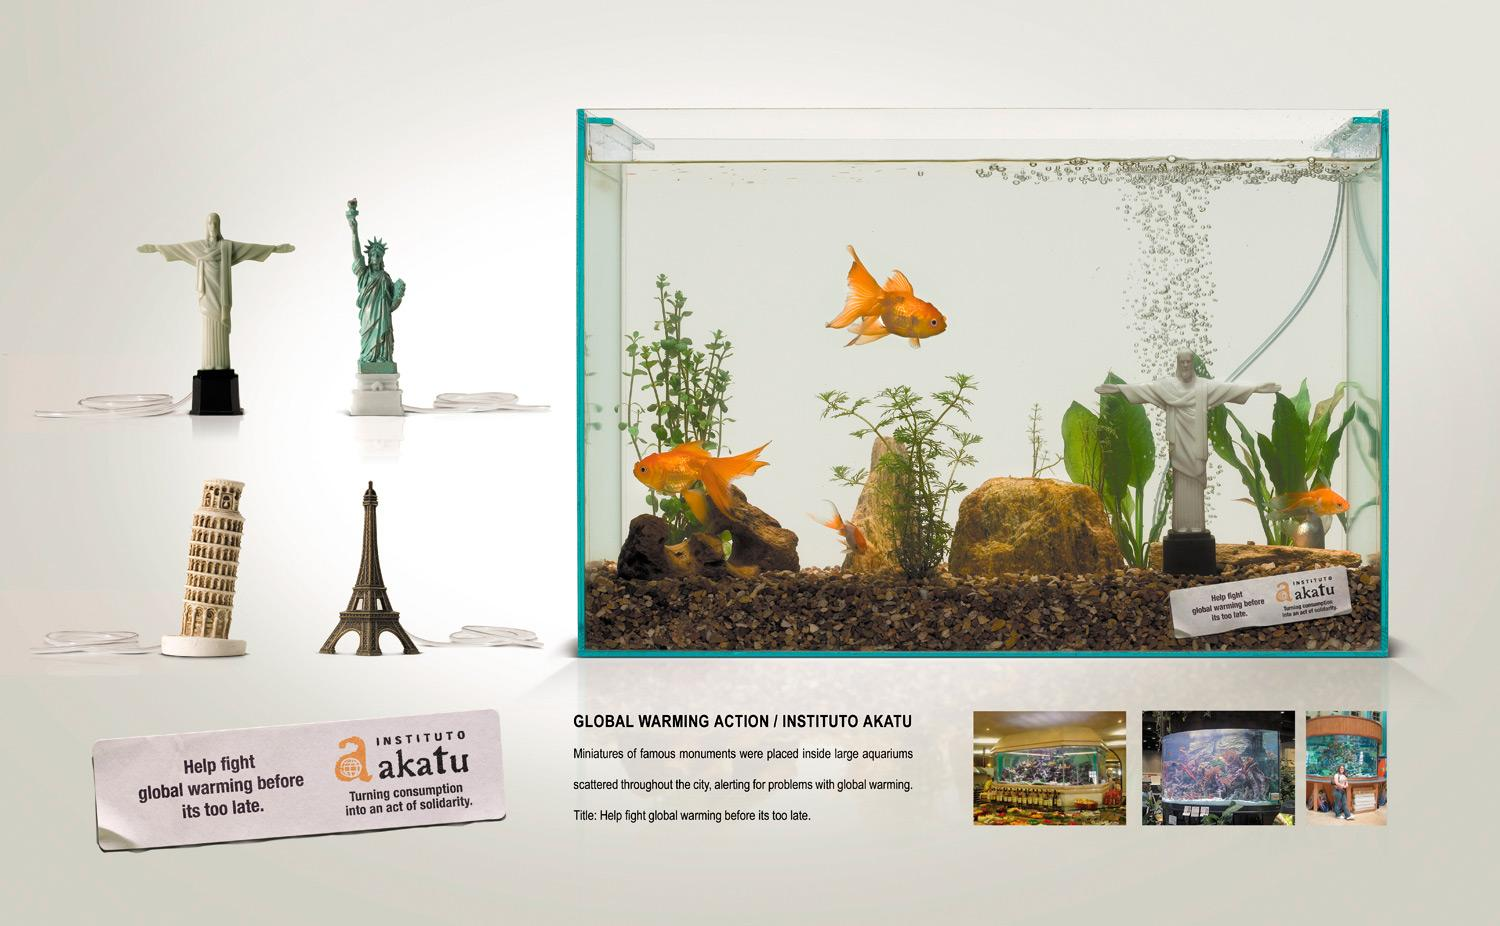 Akatu Institute Ambient Ad -  Aquarium monuments